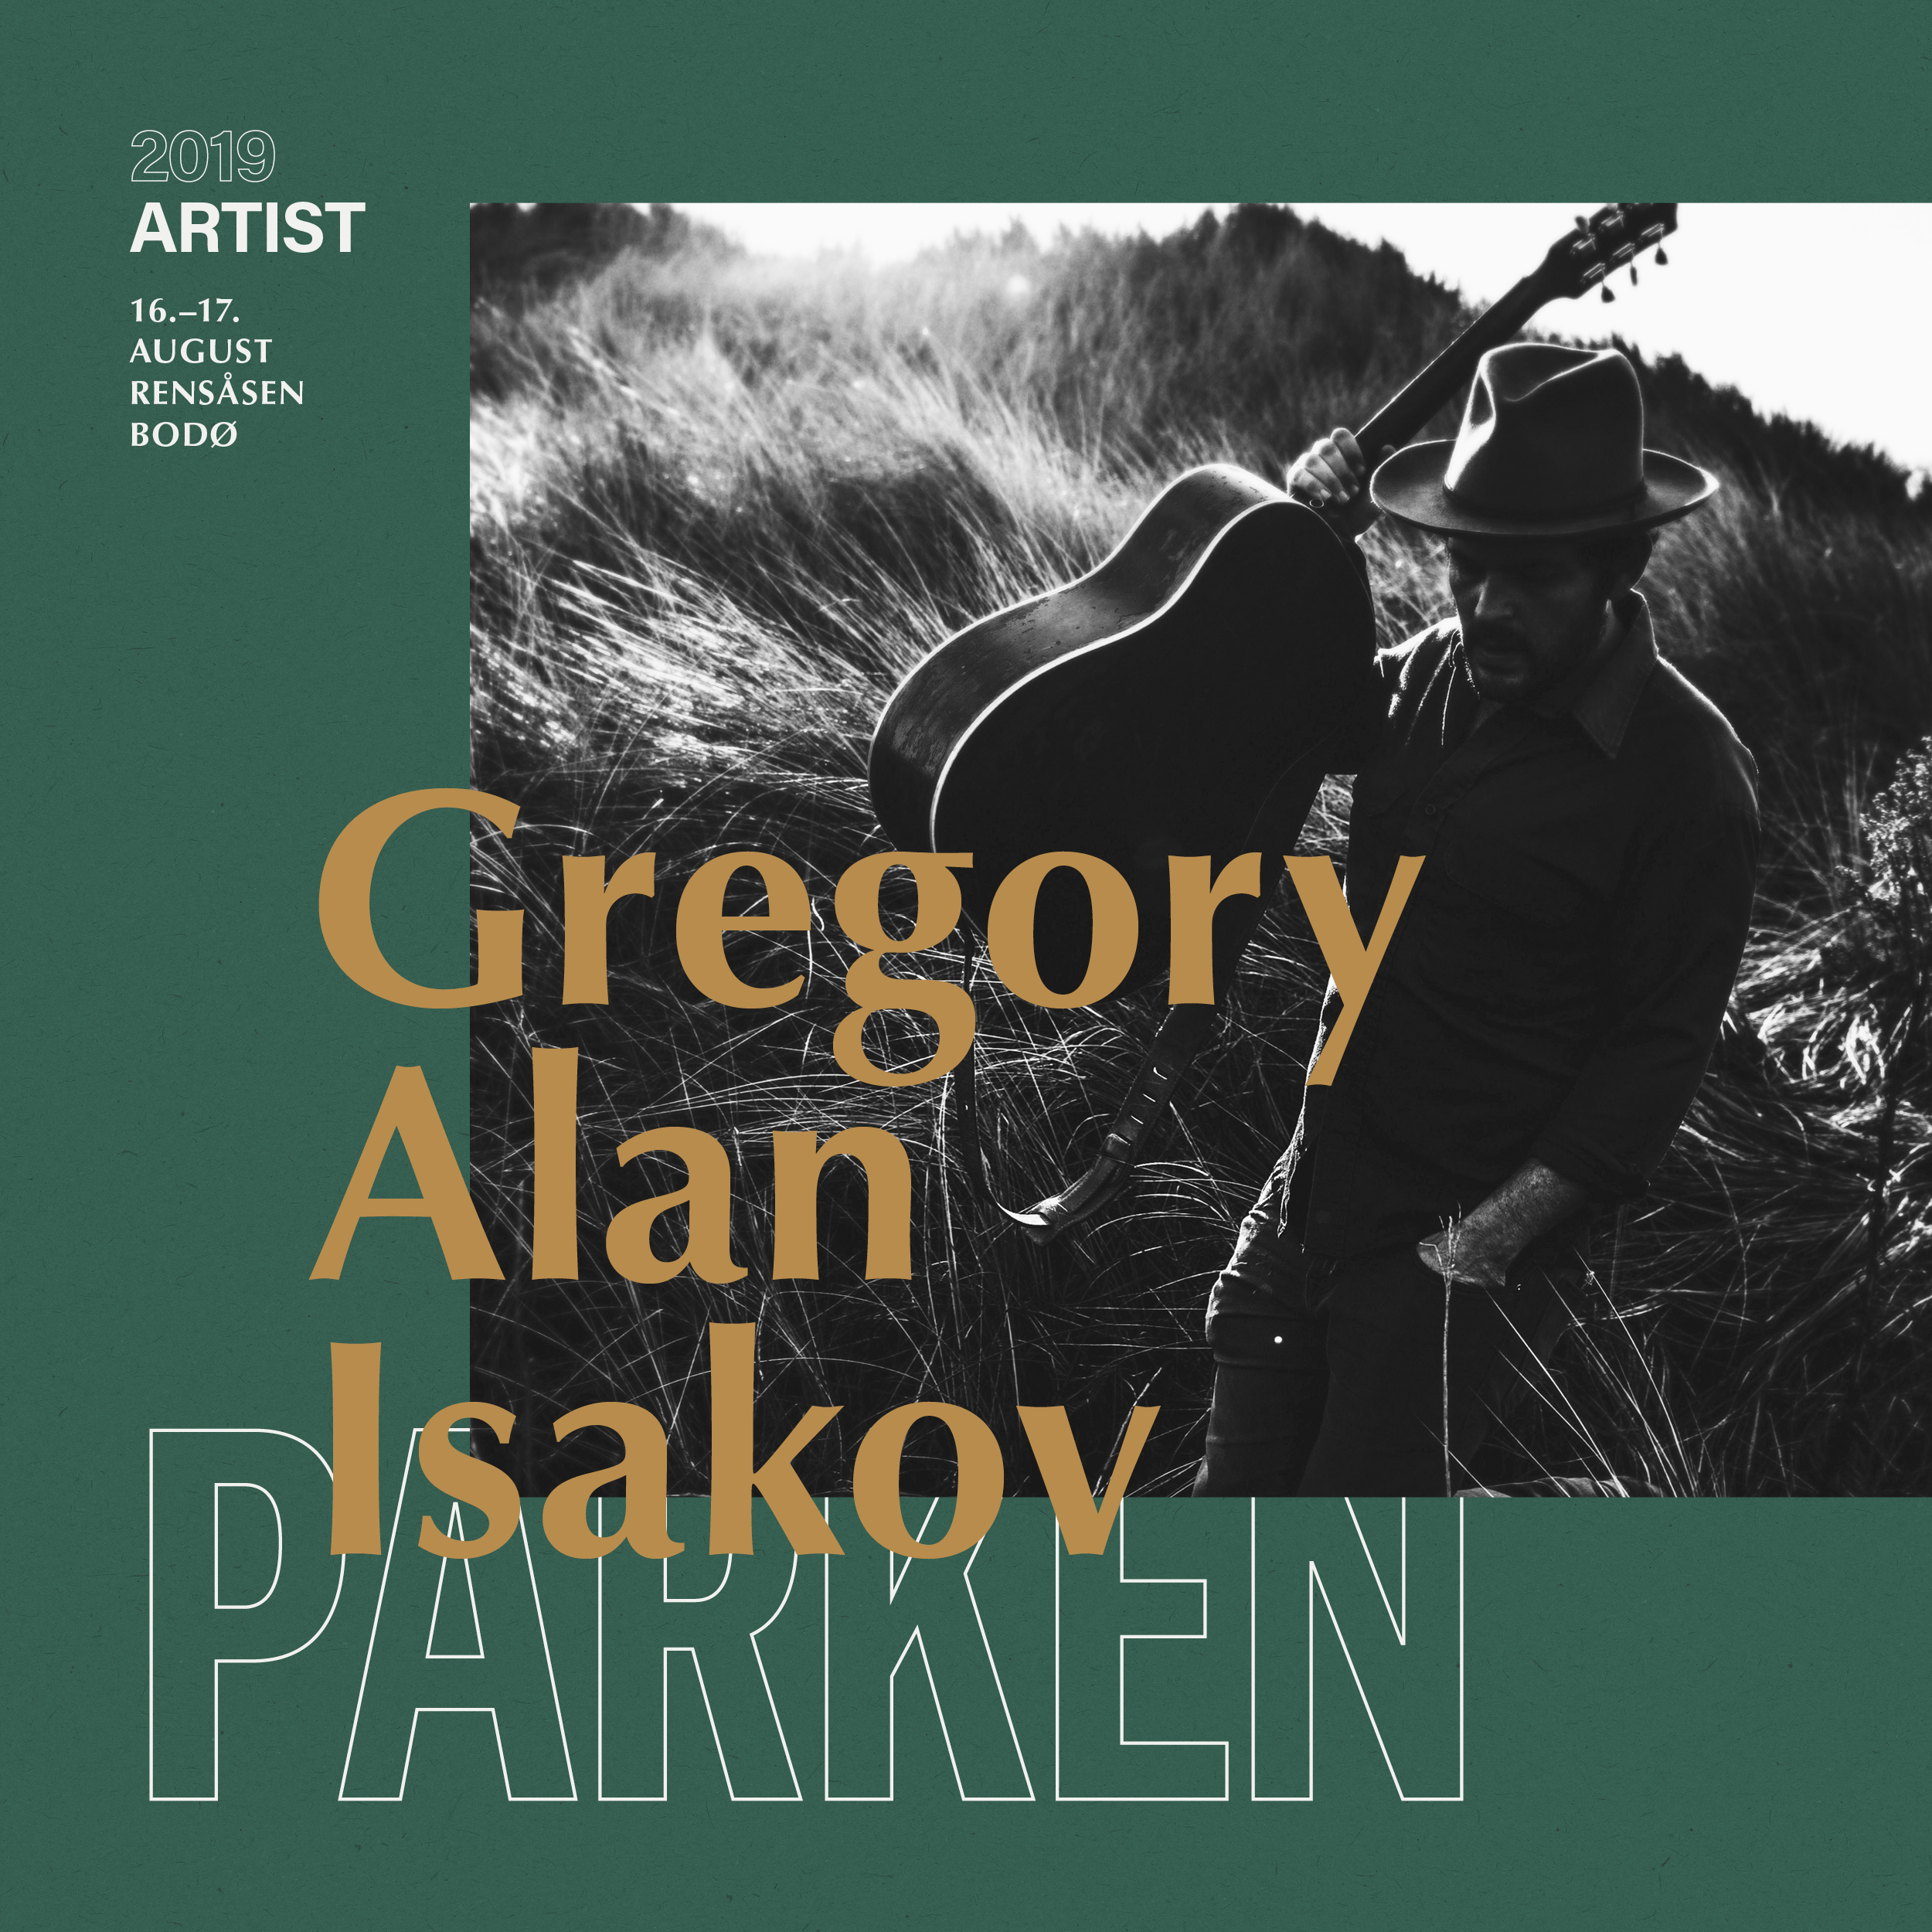 Gregory_Alan_Isakov_19.jpeg